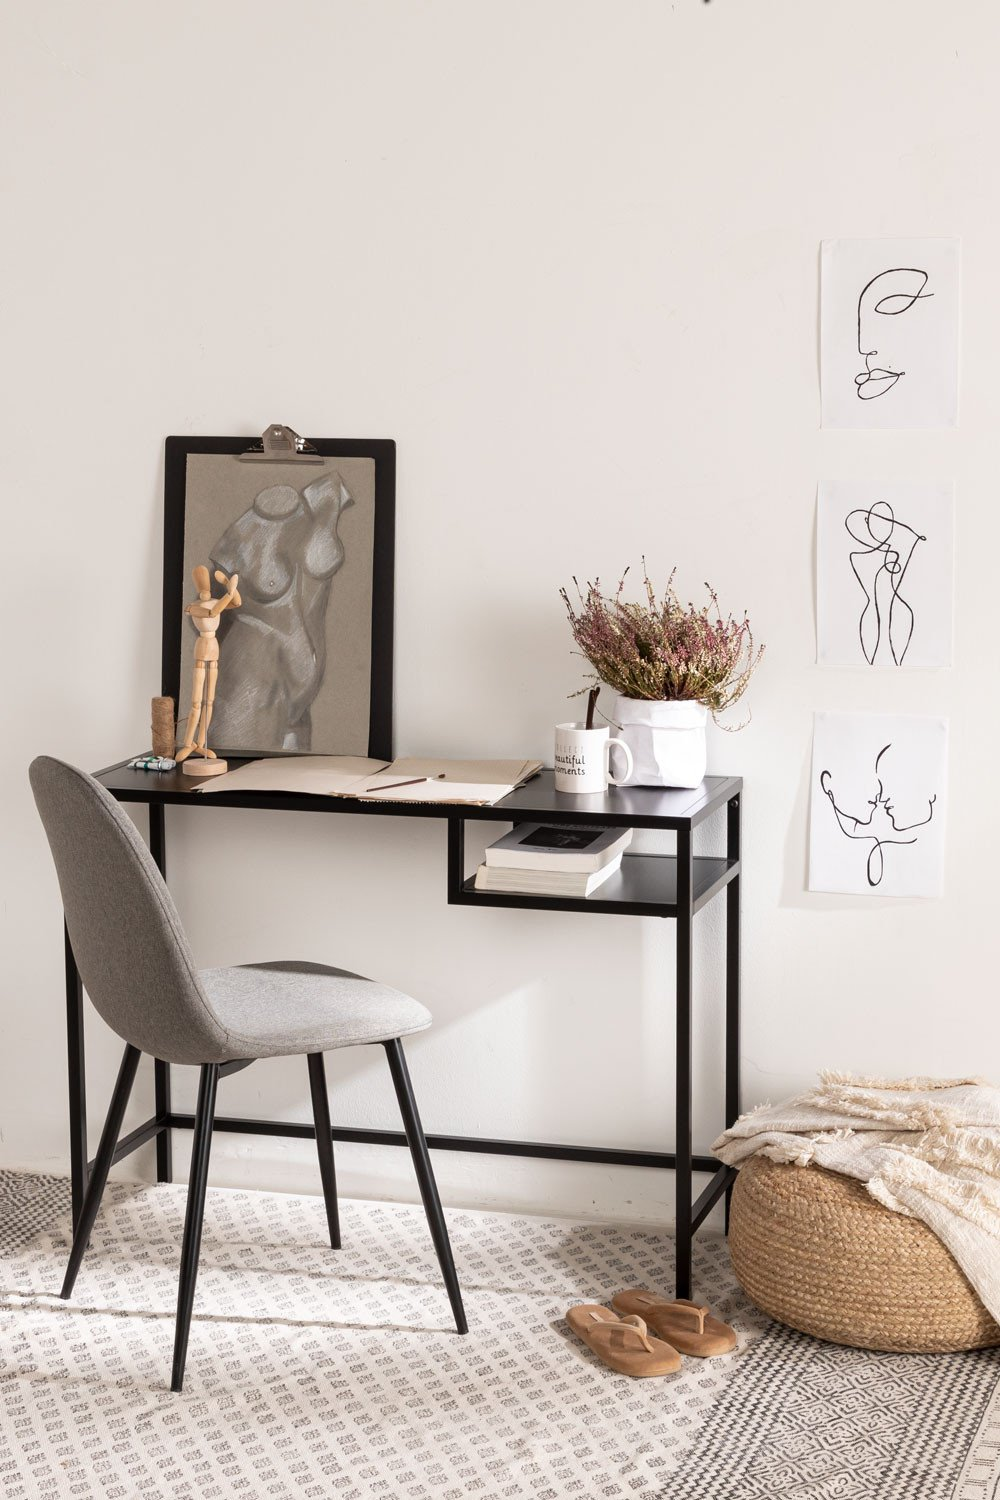 PACK of 4 Glamm Chairs in Linen, gallery image 1